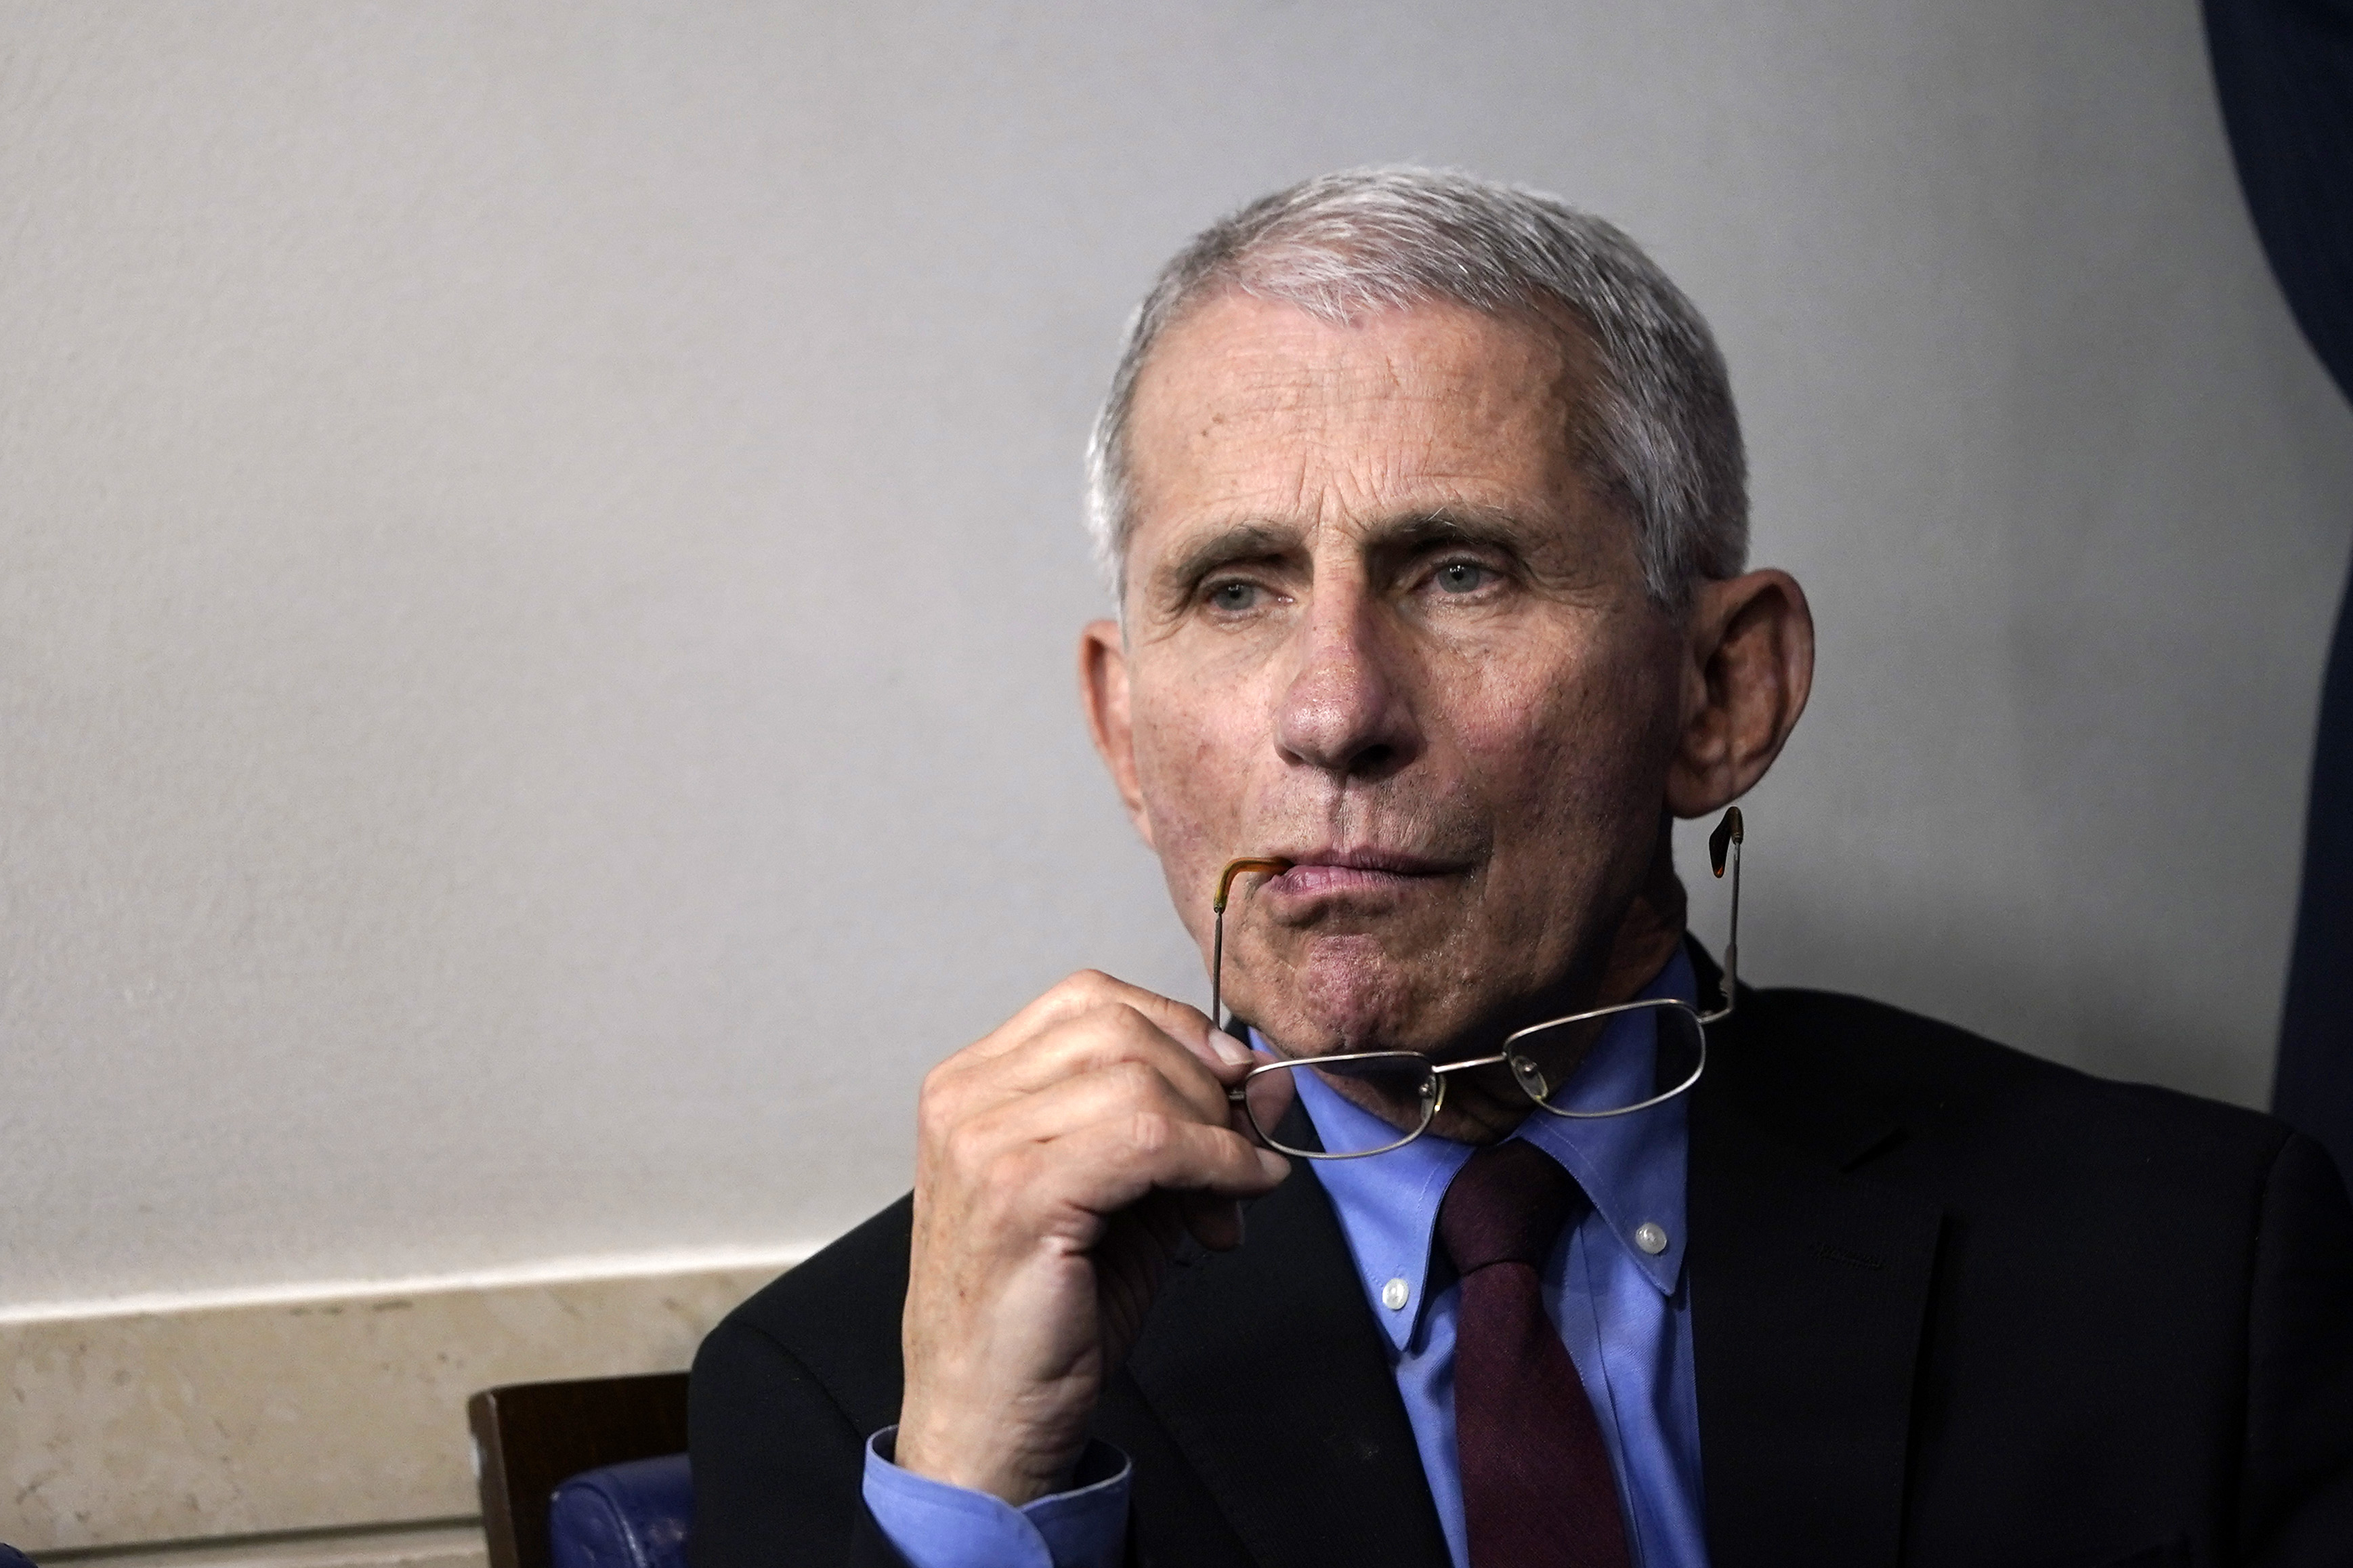 Dr. Anthony Fauci in Washington, D.C. (Photo by Drew Angerer/Getty Images)